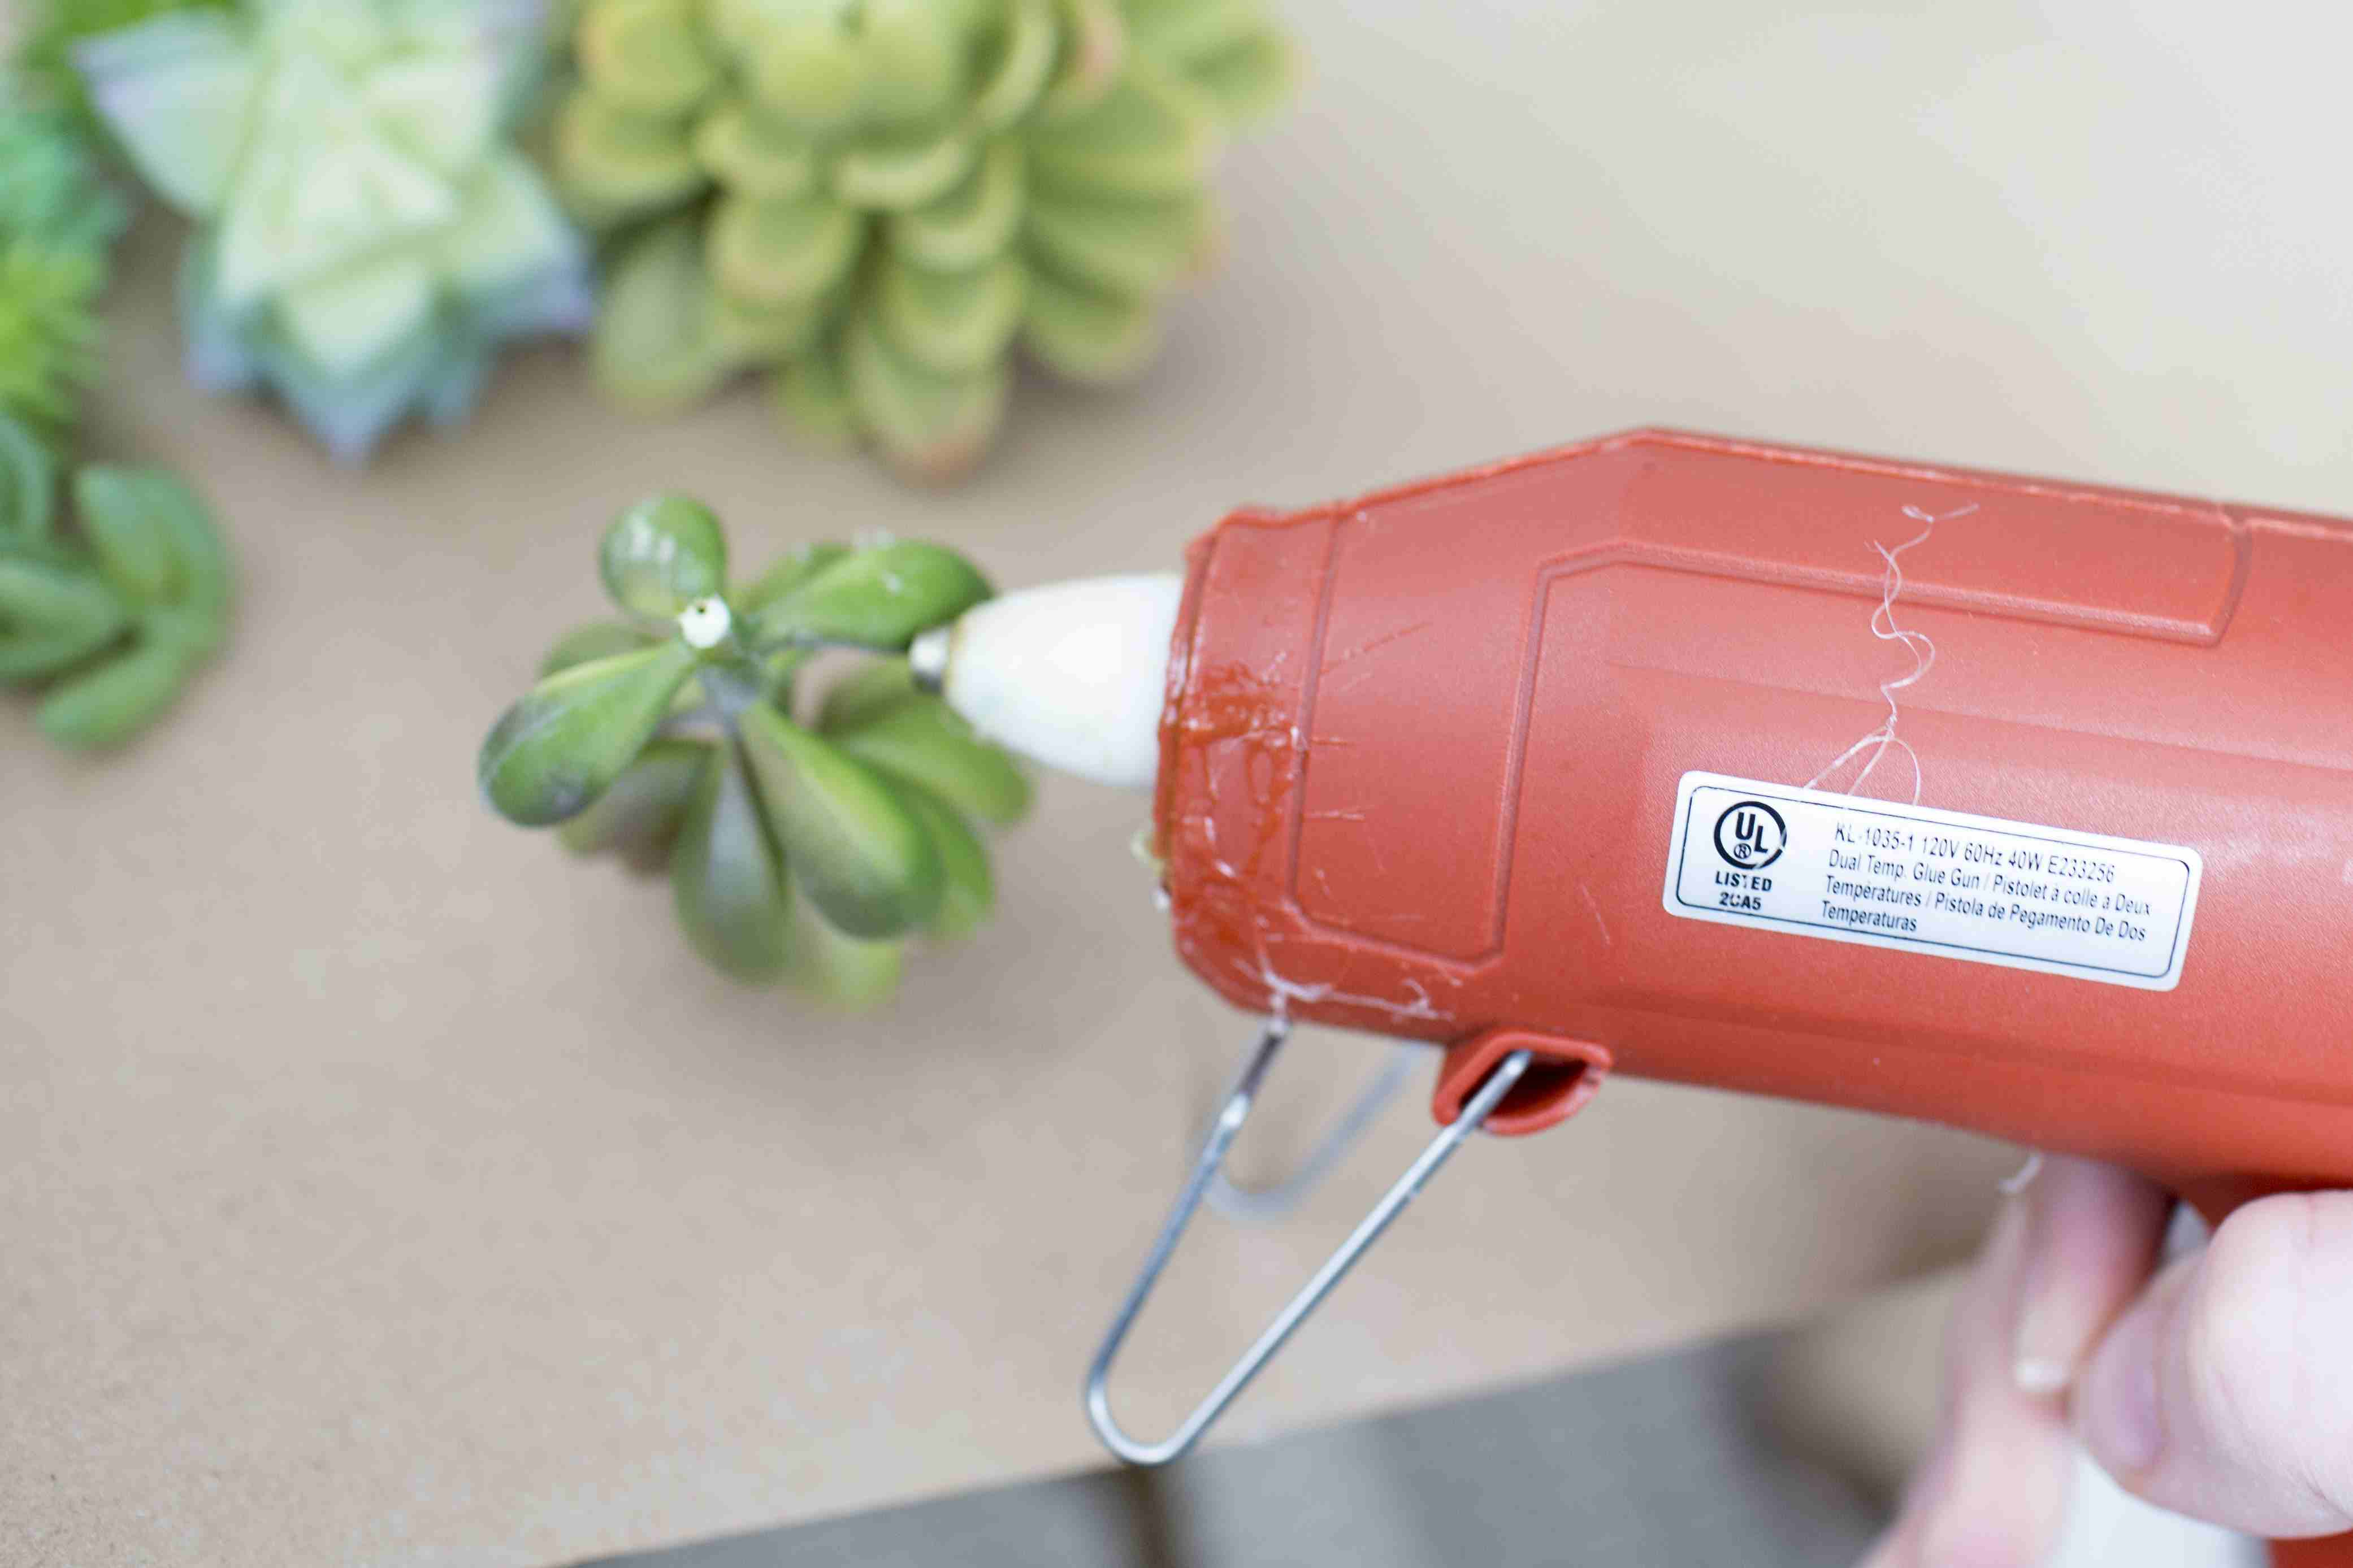 Hot glue your faux plants into their boxes